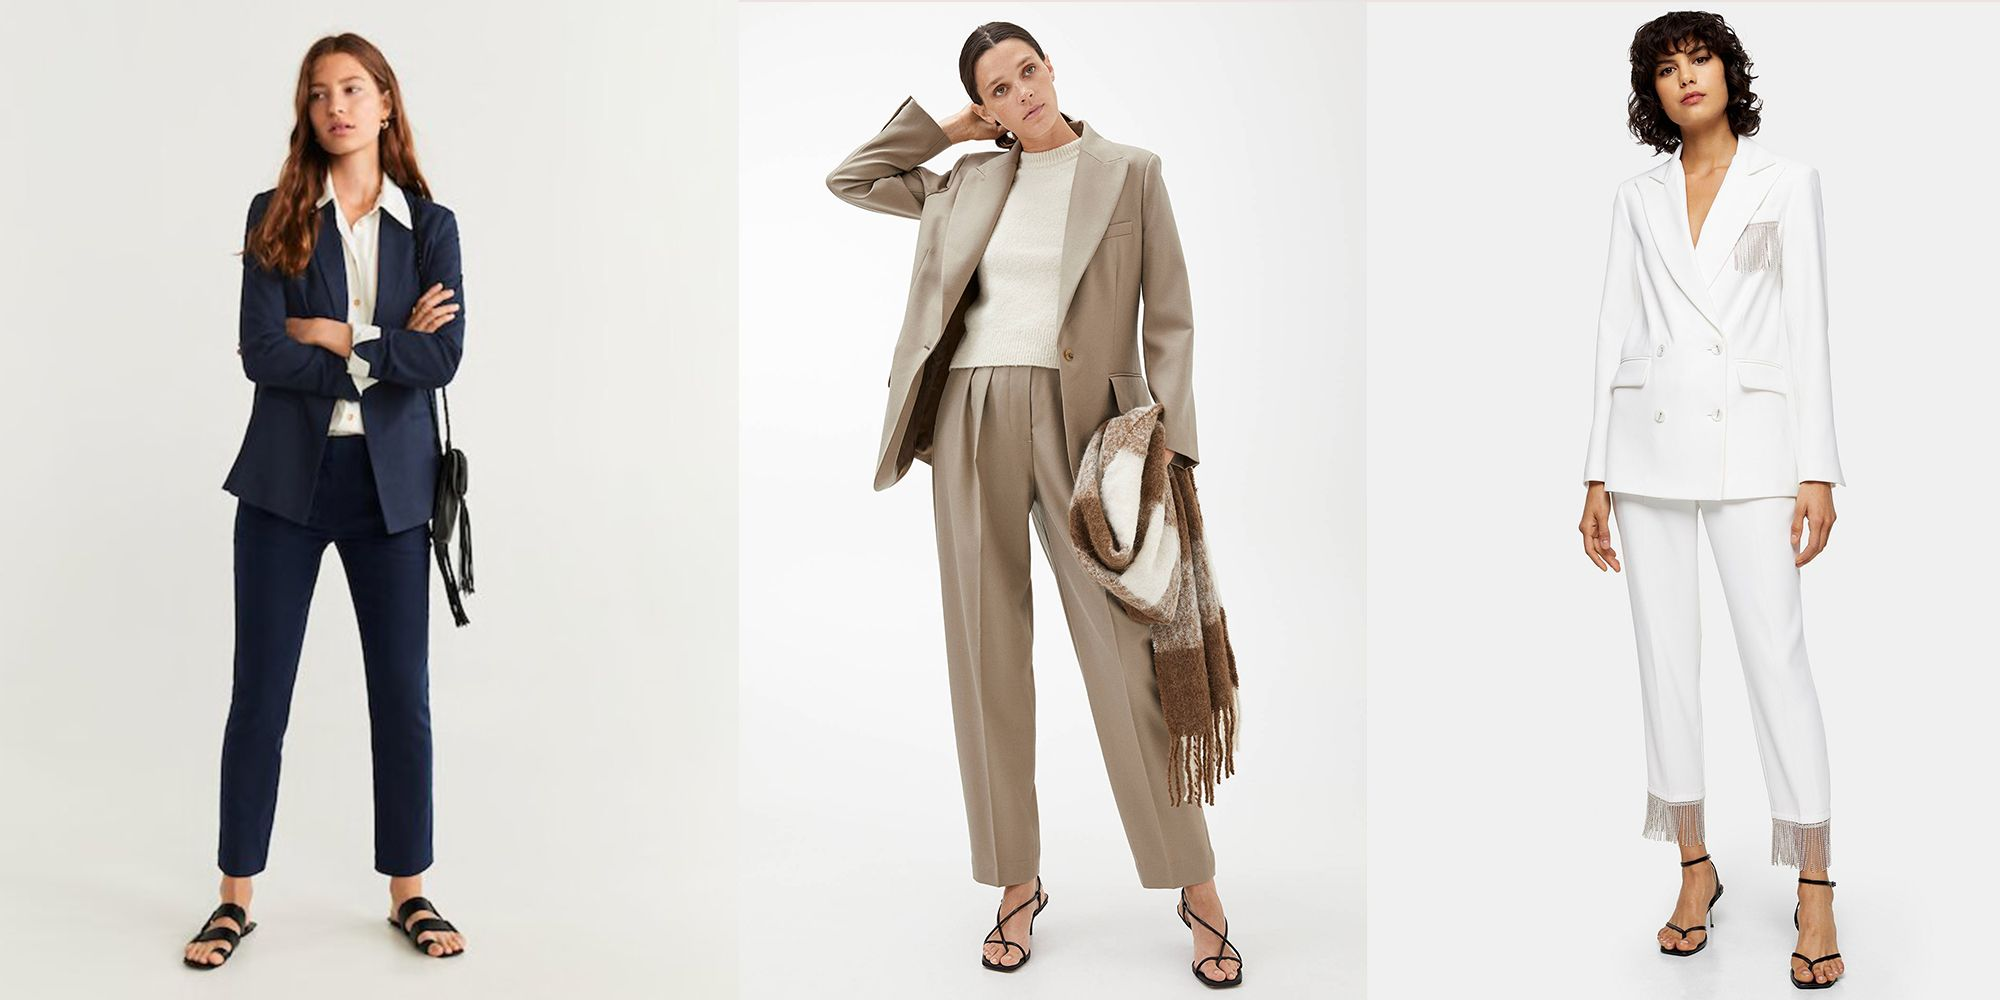 11 of the best women's tailored suits to wear this autumn